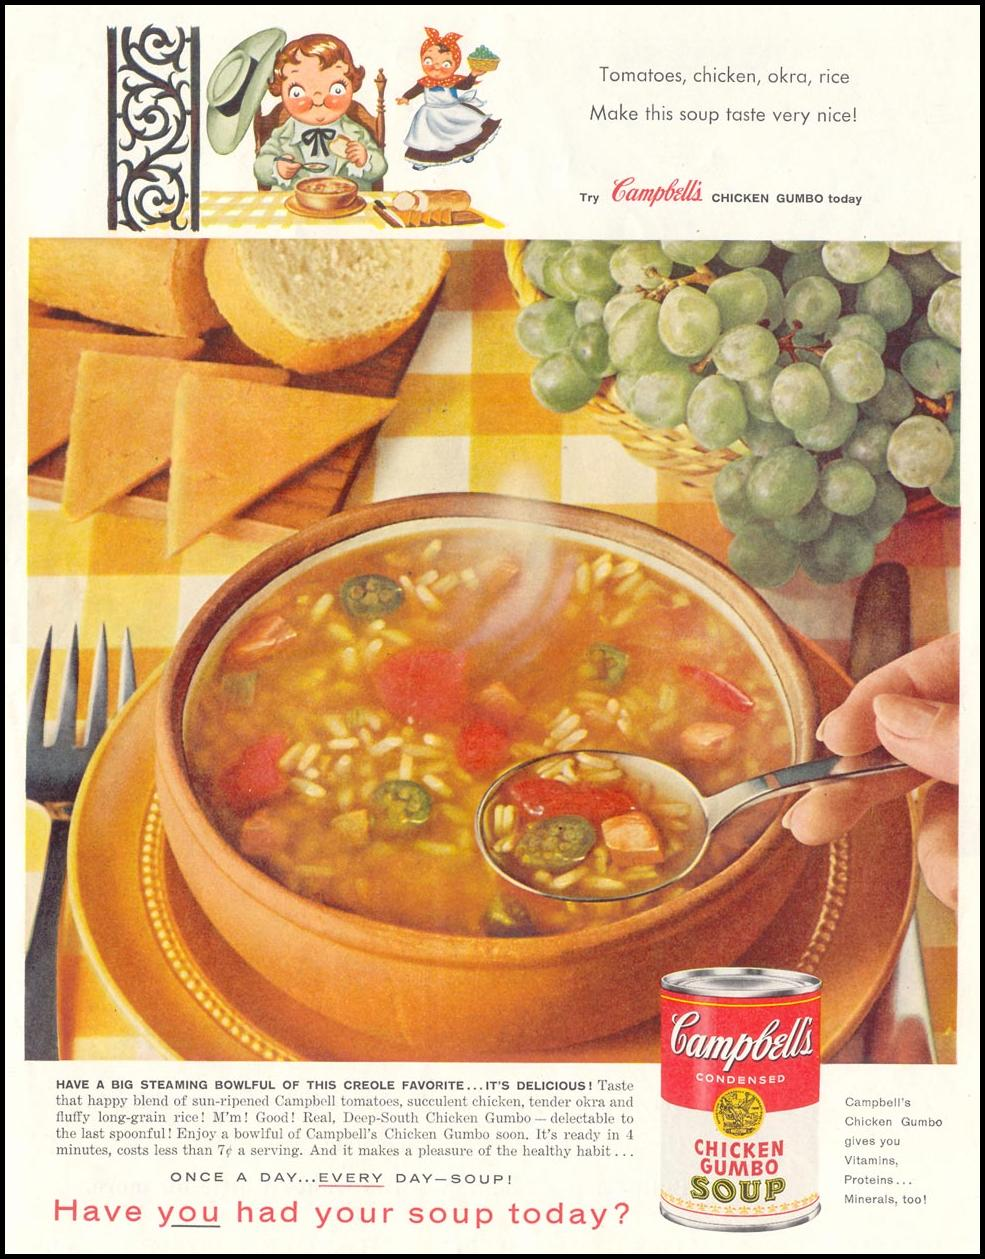 CAMPBELL'S CHICKEN GUMBO SOUP SATURDAY EVENING POST 05/02/1959